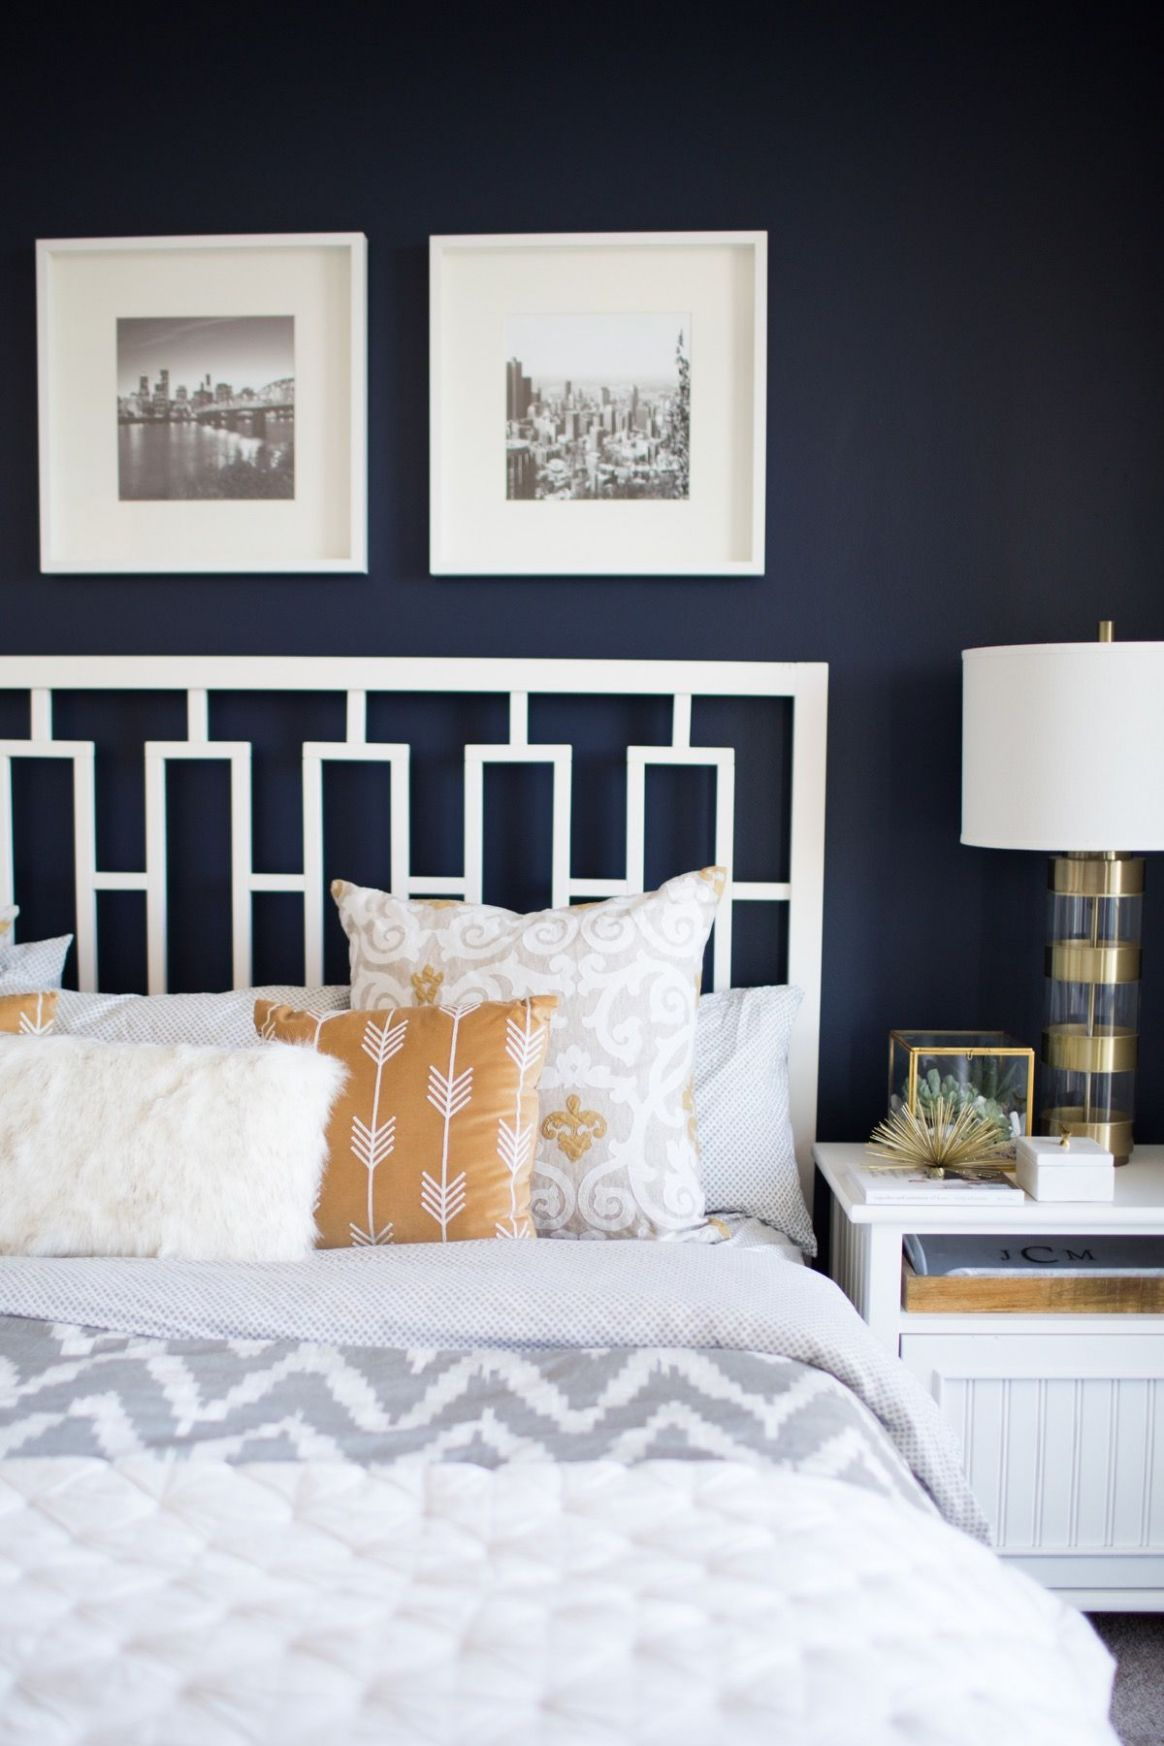 A Look Inside A Blogger's Navy and Mustard Bedroom (With images ...